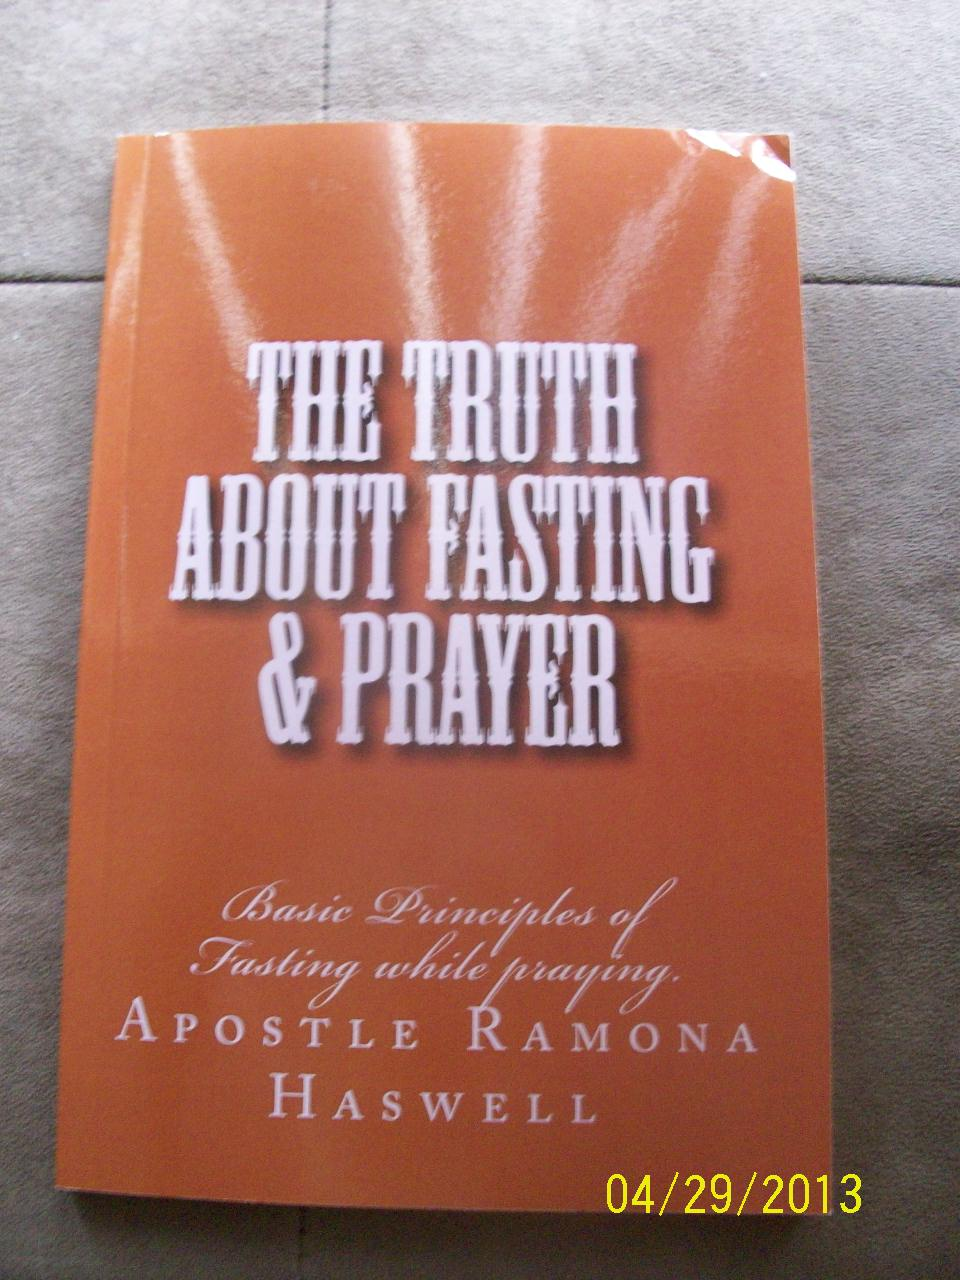 THE TRUTH ABOUT FASTING & PRAYER © 2014 - ISBN-13: 978-1484142158 / ISBN-10: 1484142152